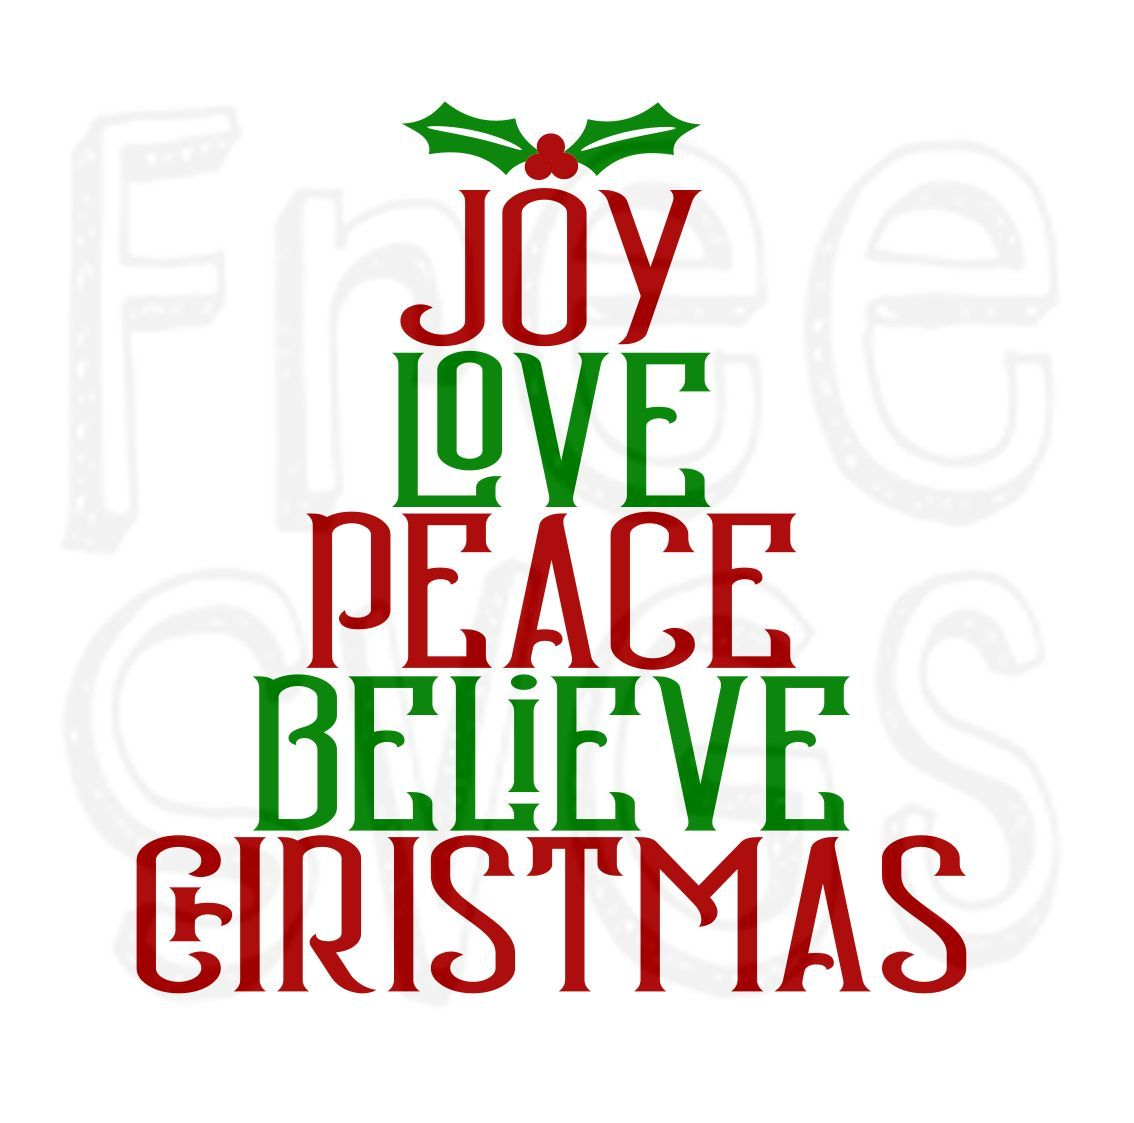 Download Joy Love Peace Believe Christmas SVG File | XMAS CARDS ...